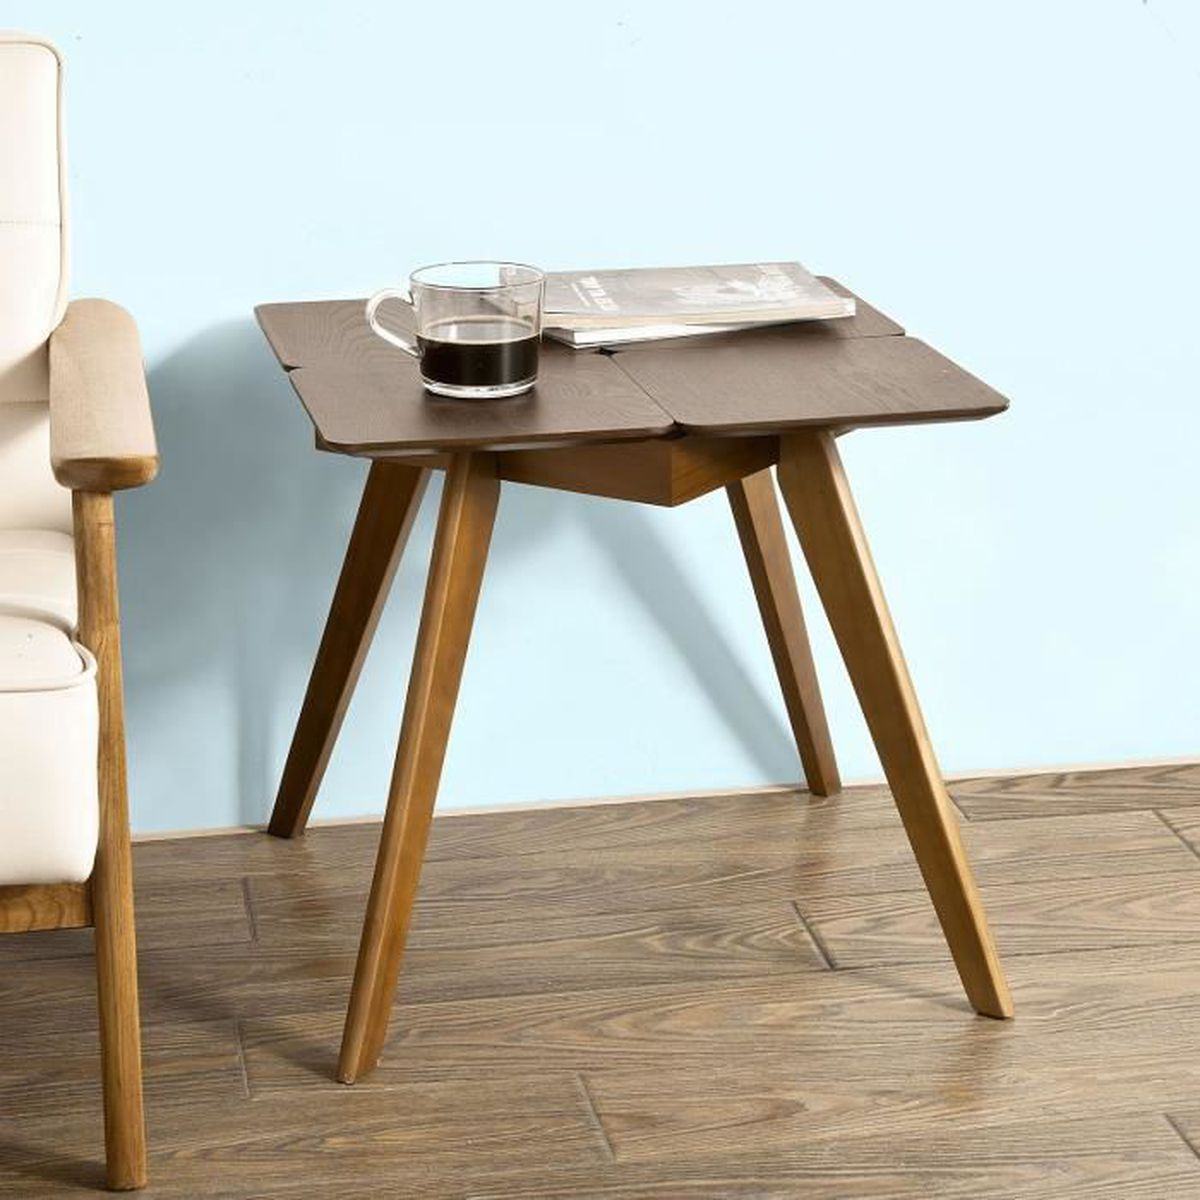 table caf table de canap table basse 4 pieds achat vente console extensible table caf. Black Bedroom Furniture Sets. Home Design Ideas